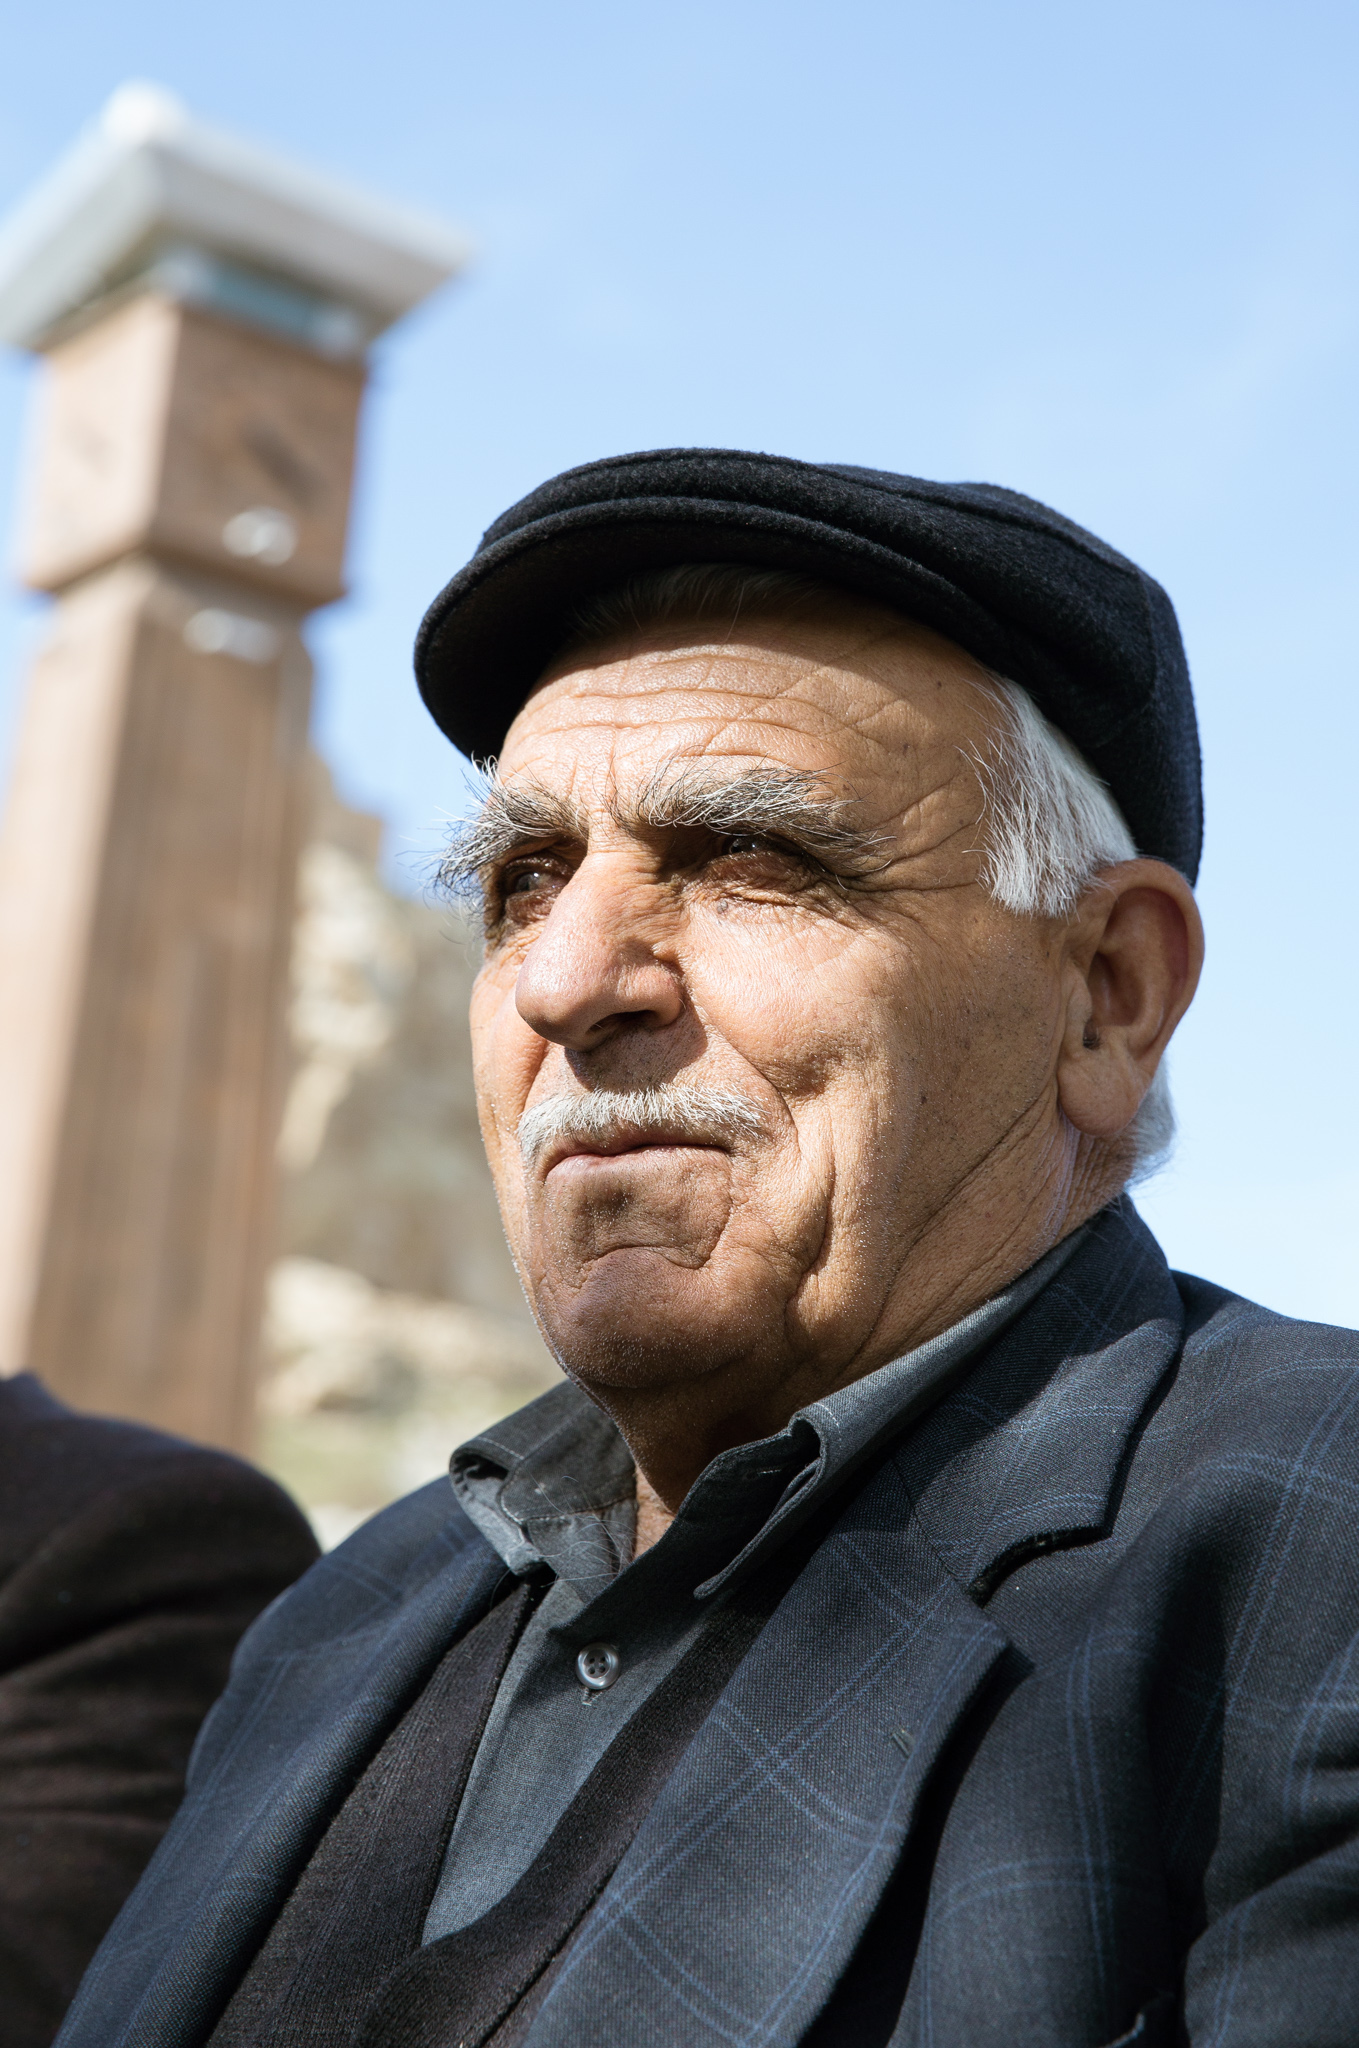 urgup_outside-mosque-4582_man-closeup.jpg